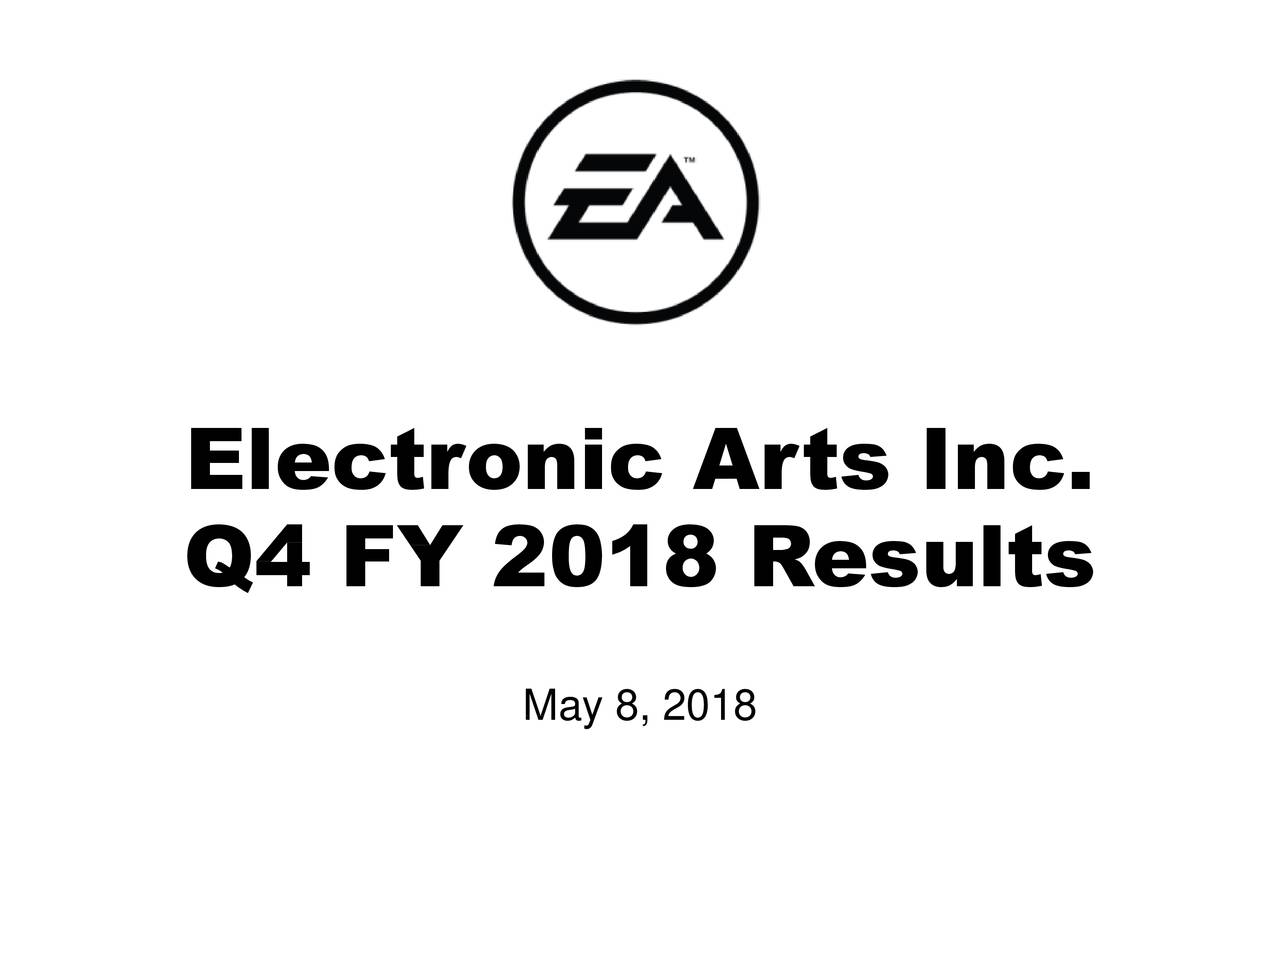 Q4 FY 2018 Results May 8, 2018